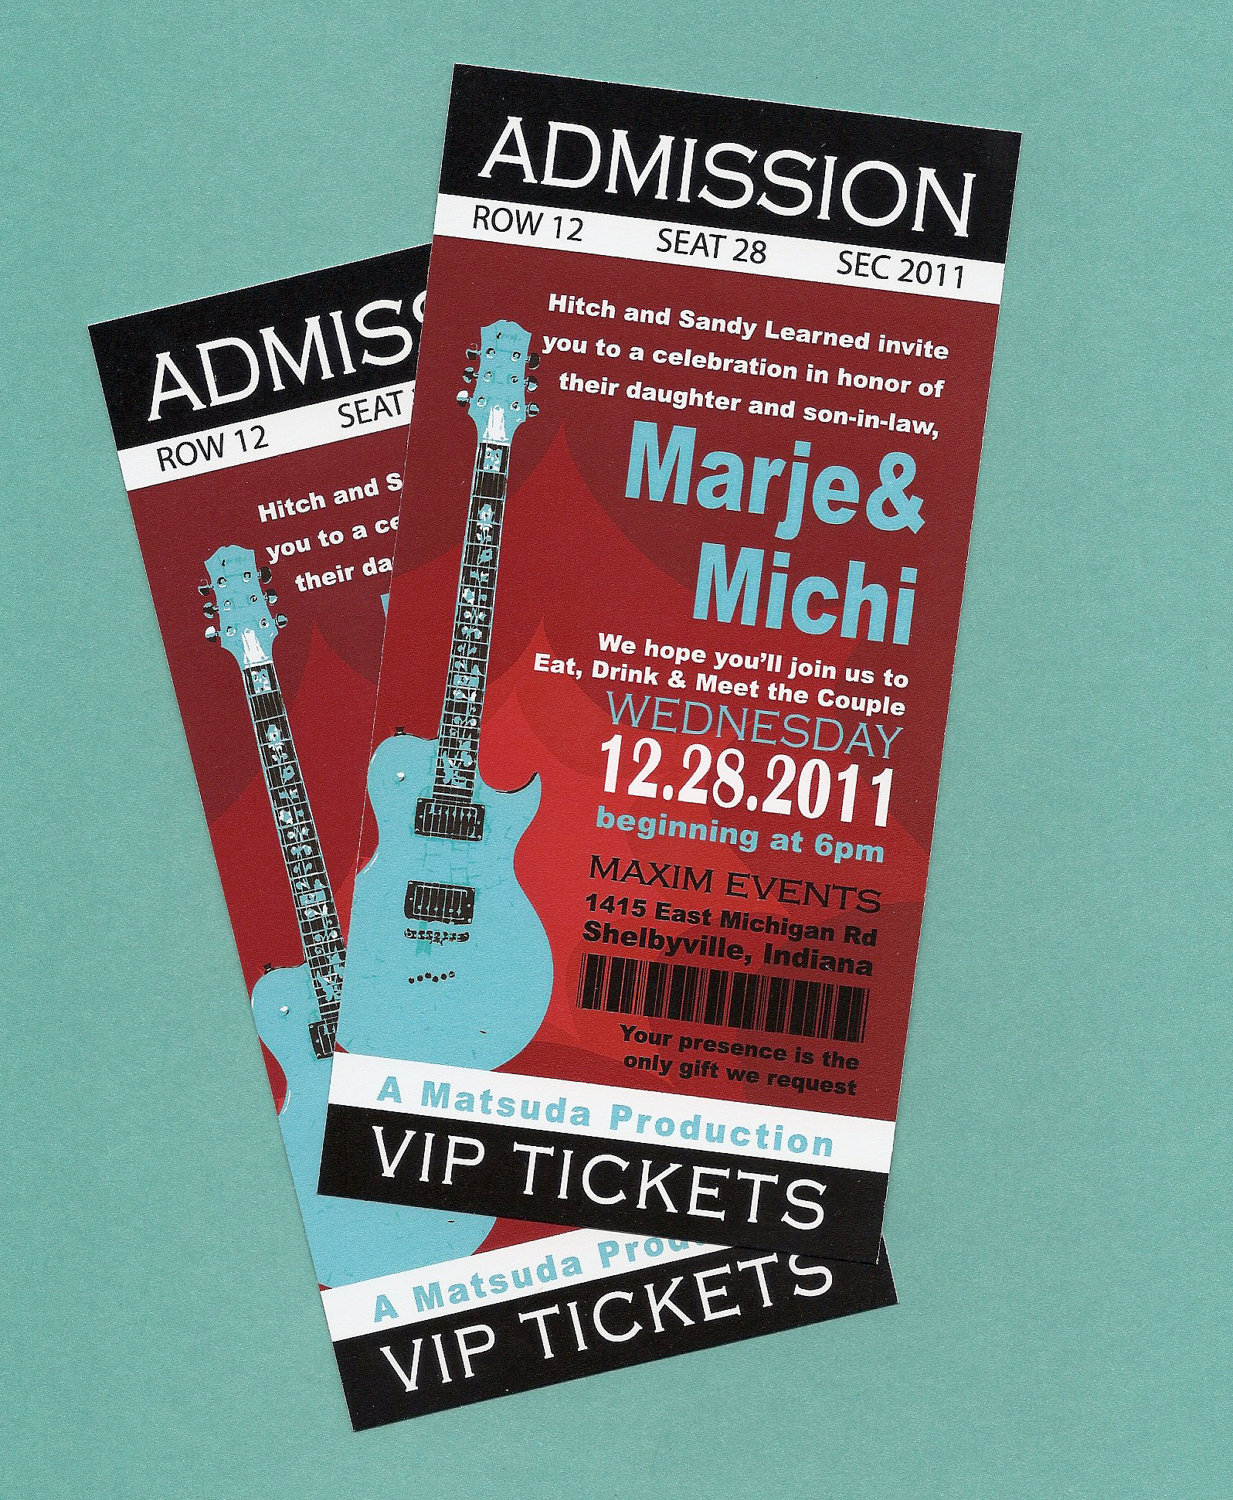 Concert Ticket Invitation  Concert Ticket Template Free Printable